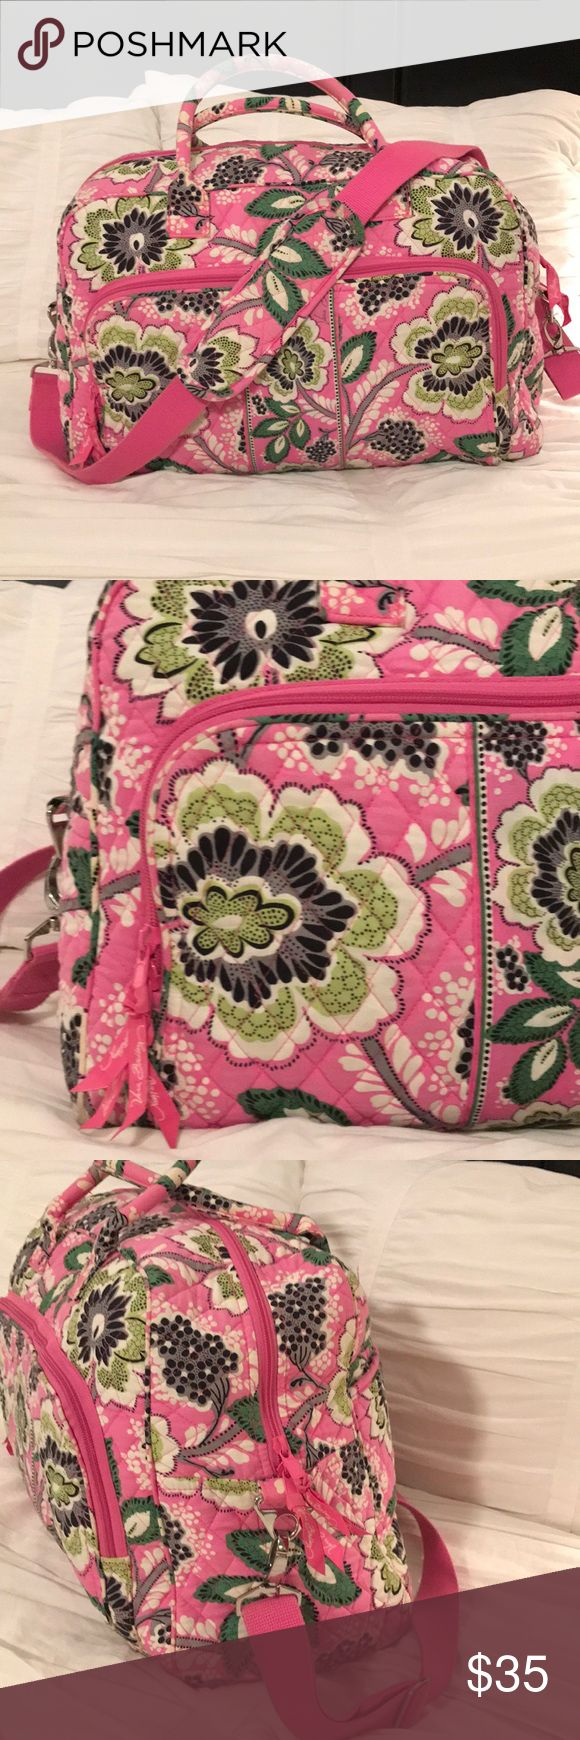 Vera Bradley Weekender Bag Perfect for short trips! Pink, green, white, gray and black paisley pattern. Detachable pink shoulder strap. Big front zip pocket, luggage attachment on back for easy carrying with a roller bag. 5 interior pockets. Lightly worn on straps (see photos), otherwise excellent condition! Vera Bradley Bags Travel Bags